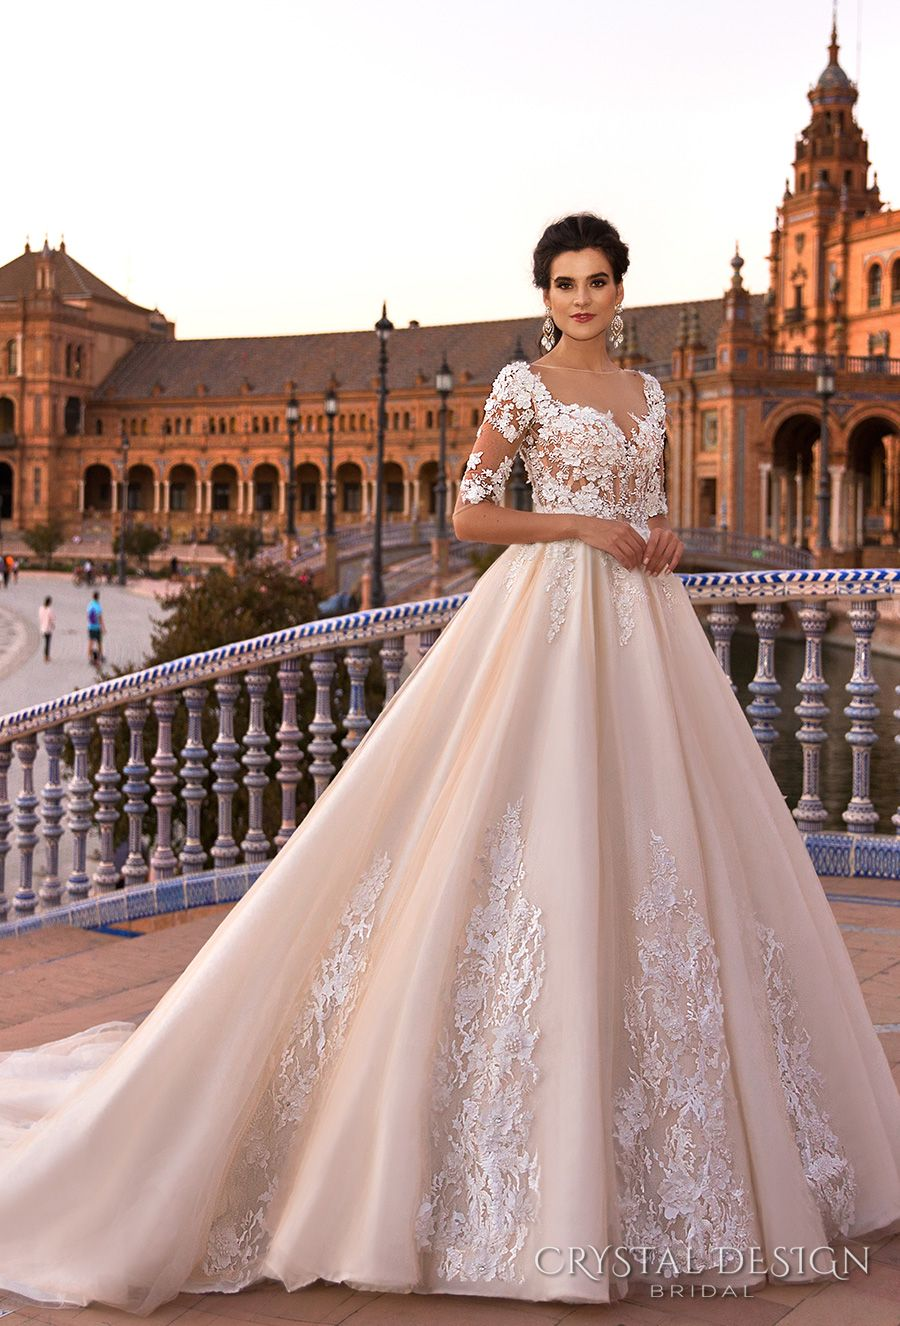 Design a wedding dress  Beautiful Wedding Dresses from the  Crystal Design Collection